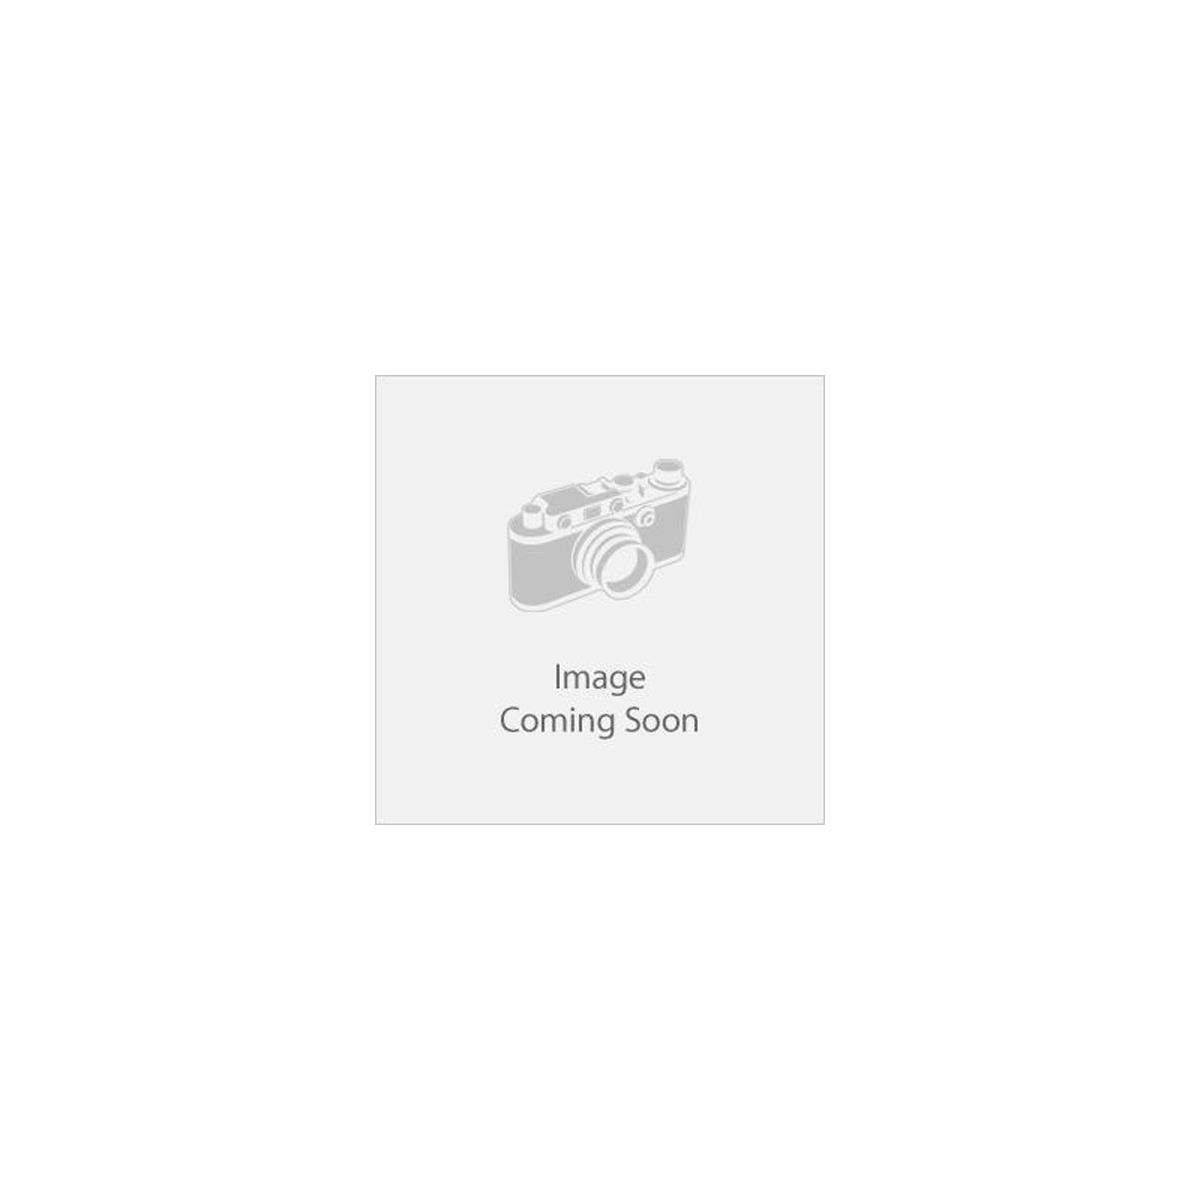 PlayStation PlayStation 5: Picture 4